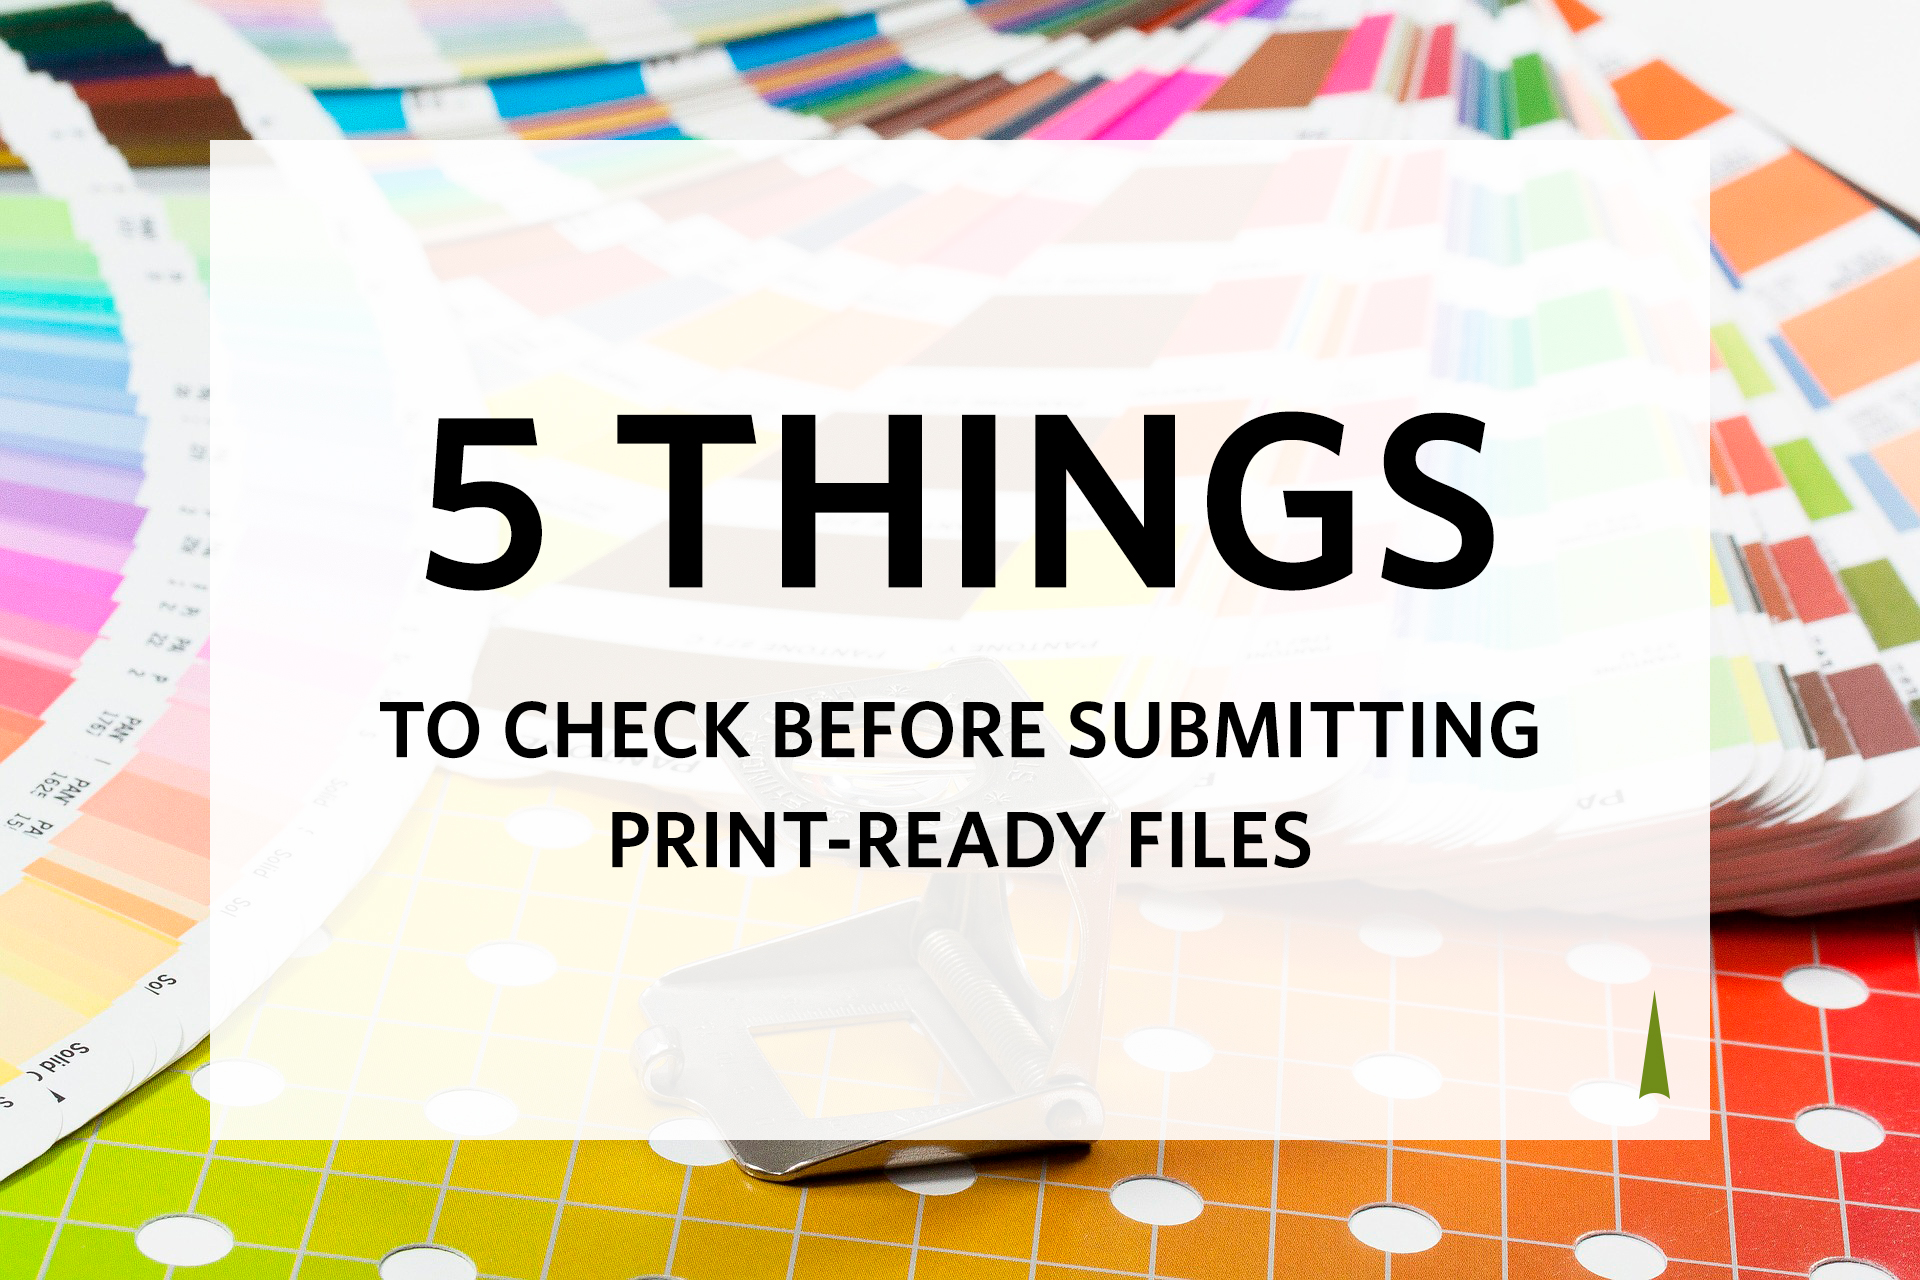 Submit Print Ready Files to the Printer